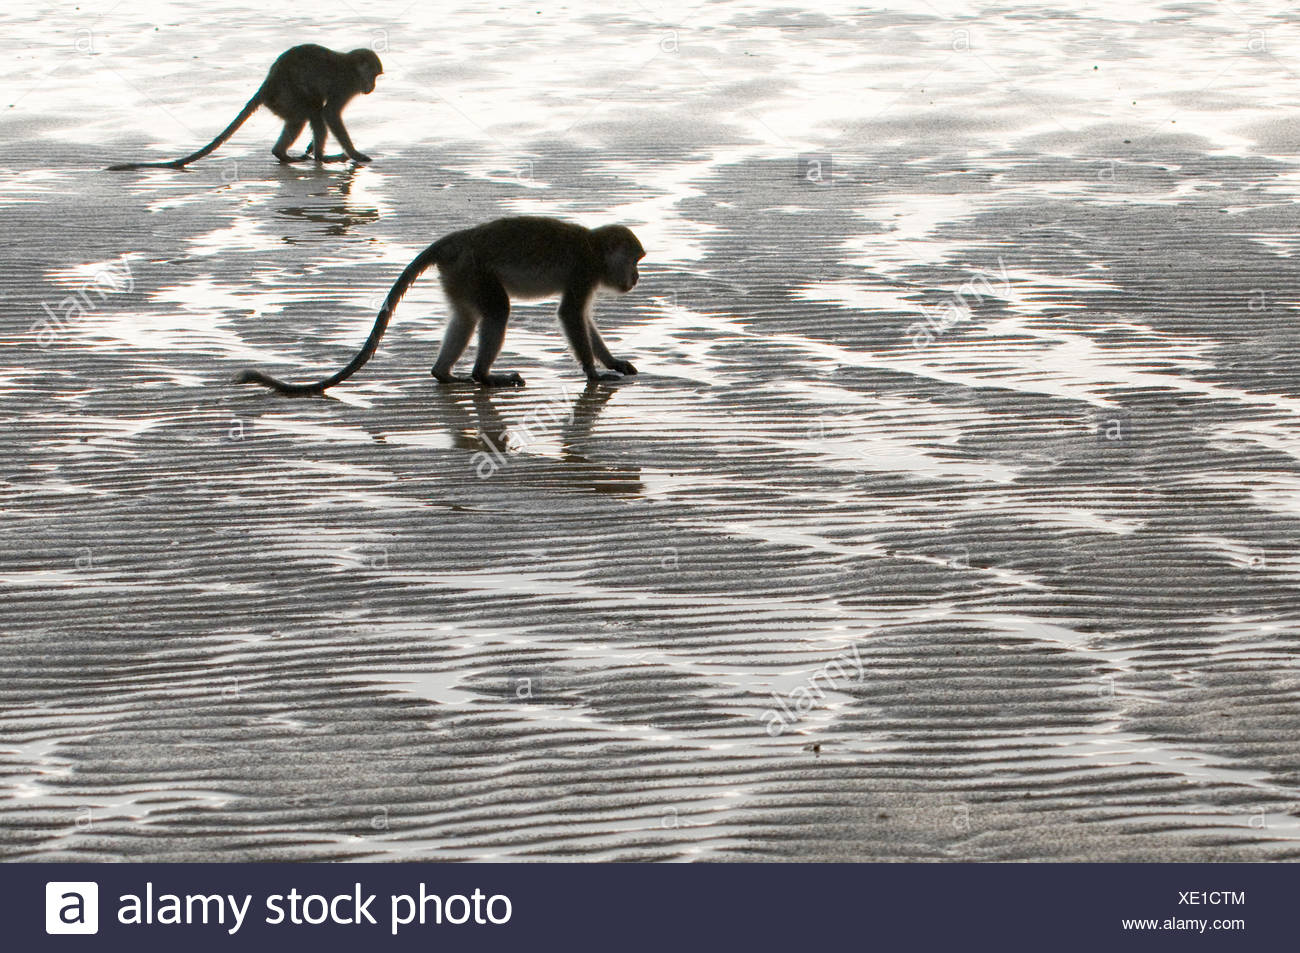 Two Long-tailed / Crab-eating macaques (Macaca fascicularis) foraging on coastline at low tide, Bako National Park, Sarawak, Borneo, Malaysia - Stock Image